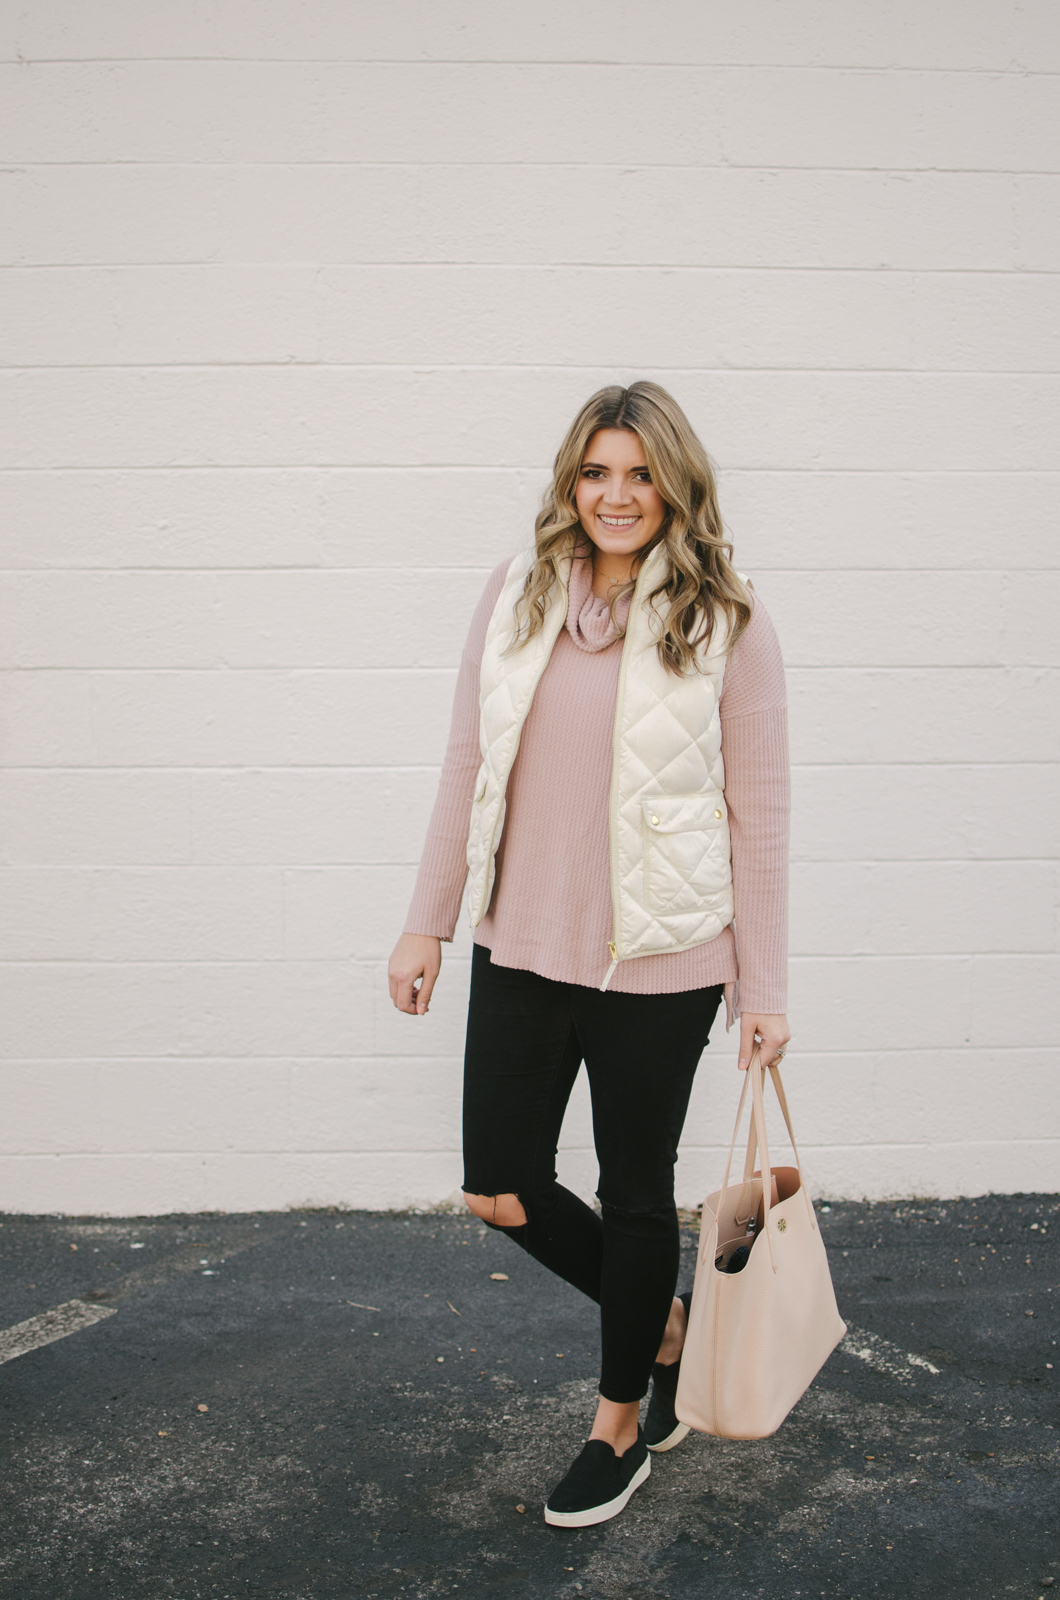 white puffer vest outfit - how to wear a puffer vest | shop this look or see more winter outfits at bylaurenm.com!